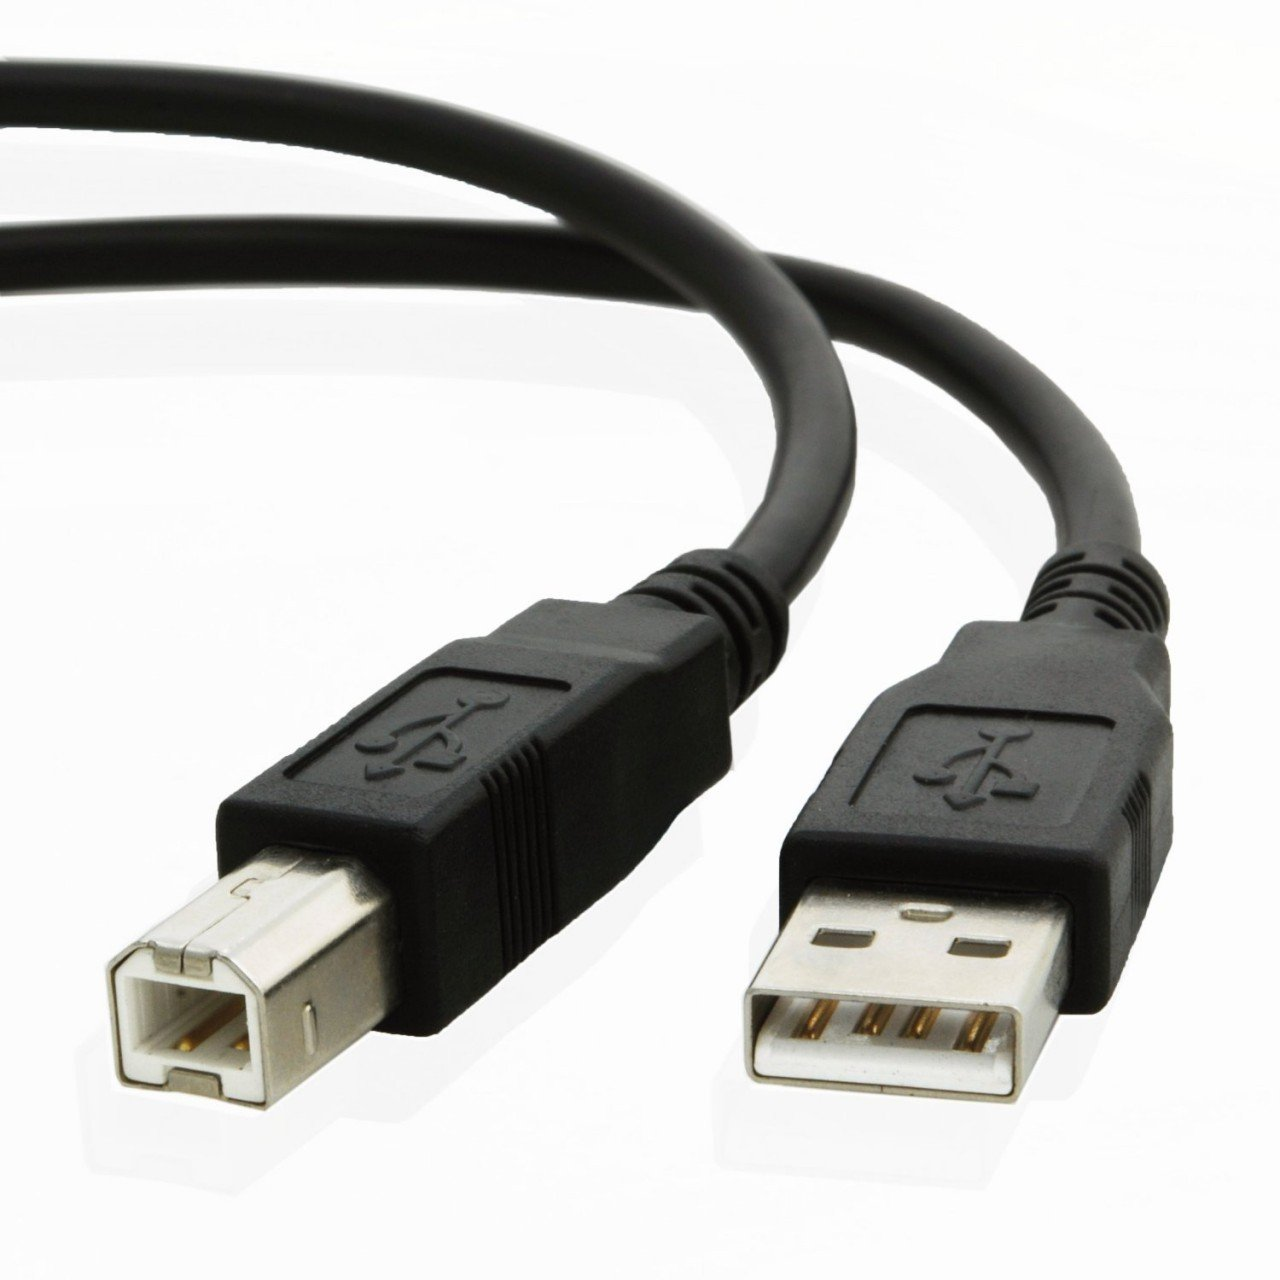 6ft USB Cable for Zebra LP 2824 Plus Monochrome Direct Thermal Label Printer